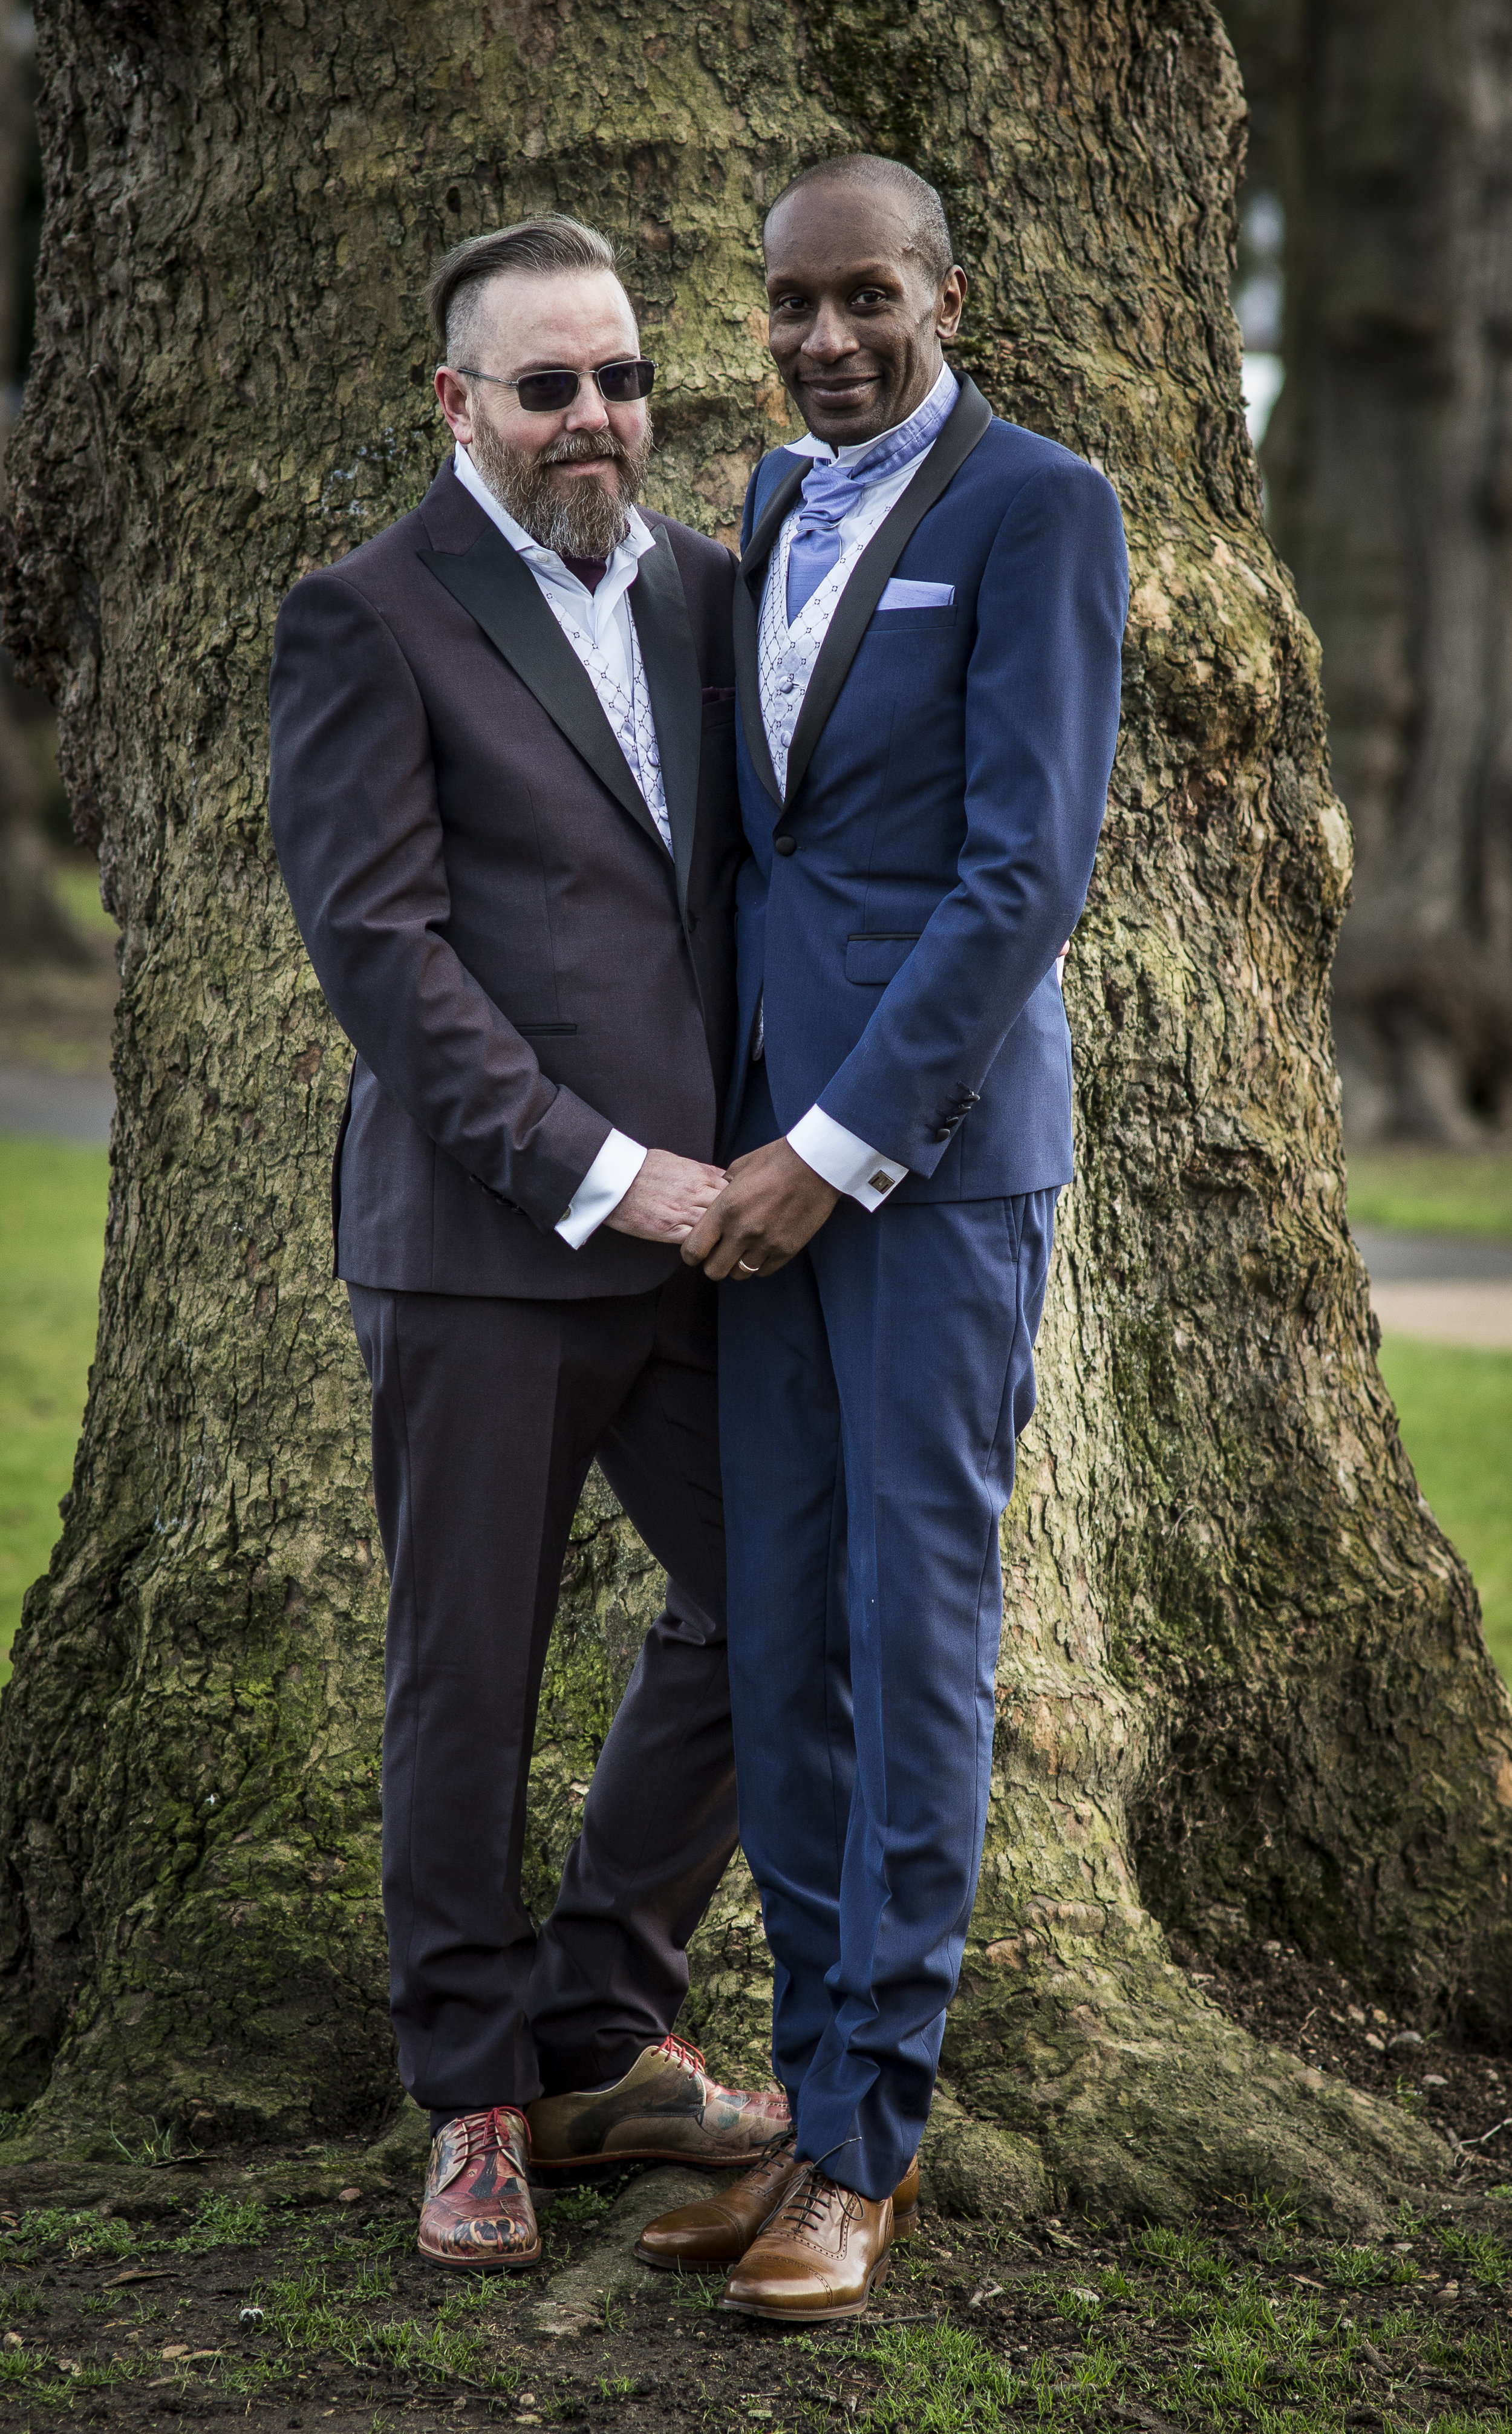 - Great photos, great guy. Jason took great shots of our civil partnership ceremony and celebration meal; everyone loves them. His experience and imagination show in his stylish shots. He's a great guy to work with as well. James - 23 December 2017